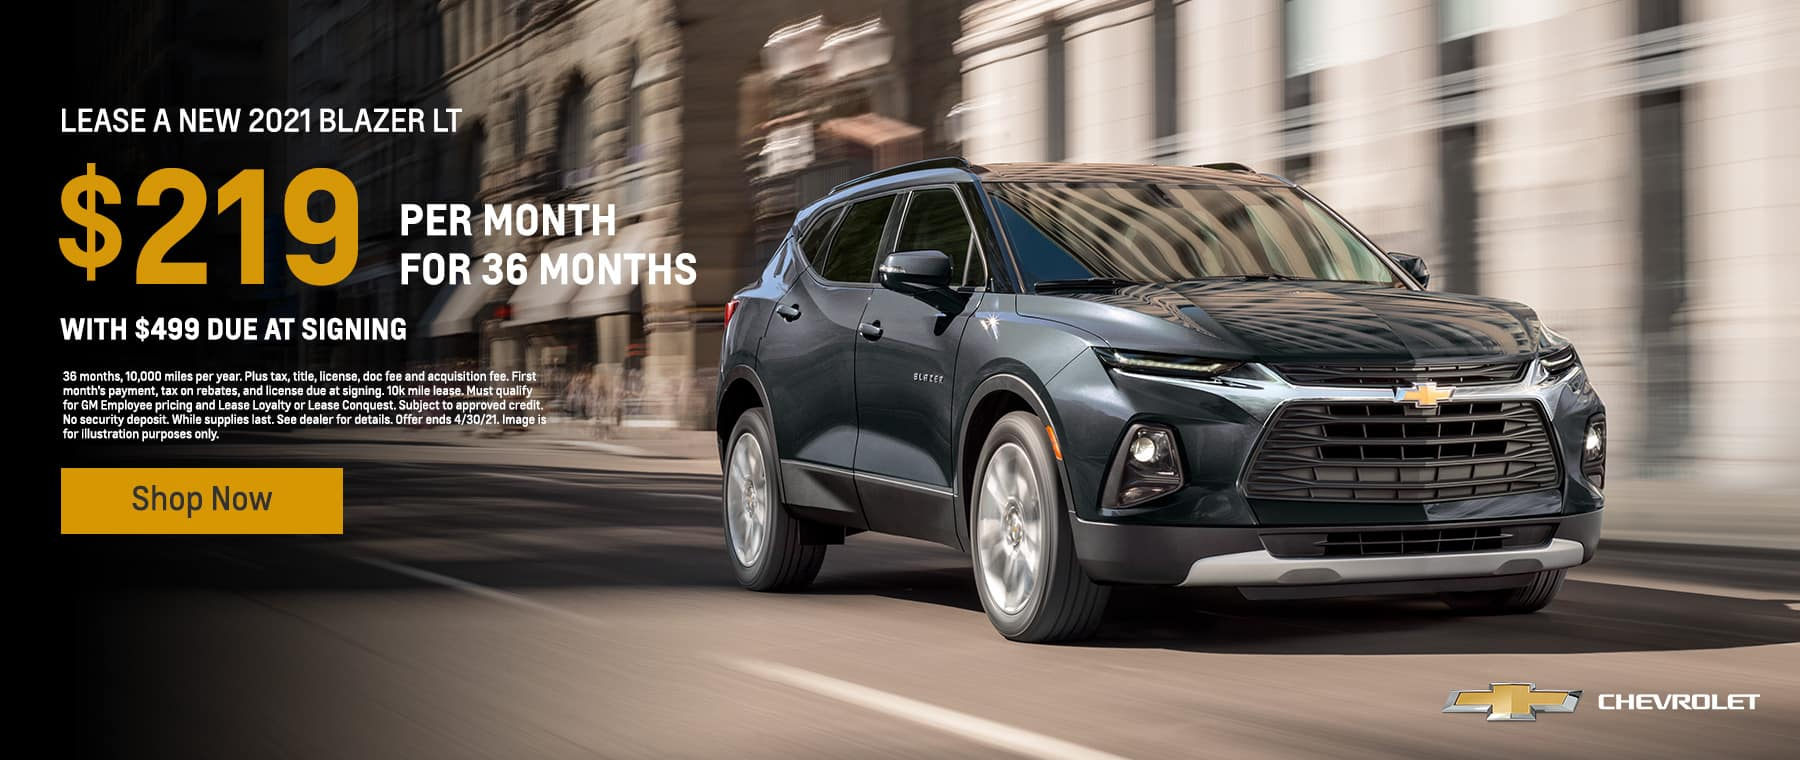 2021 Blazer LT, $219 with $499 due at signing